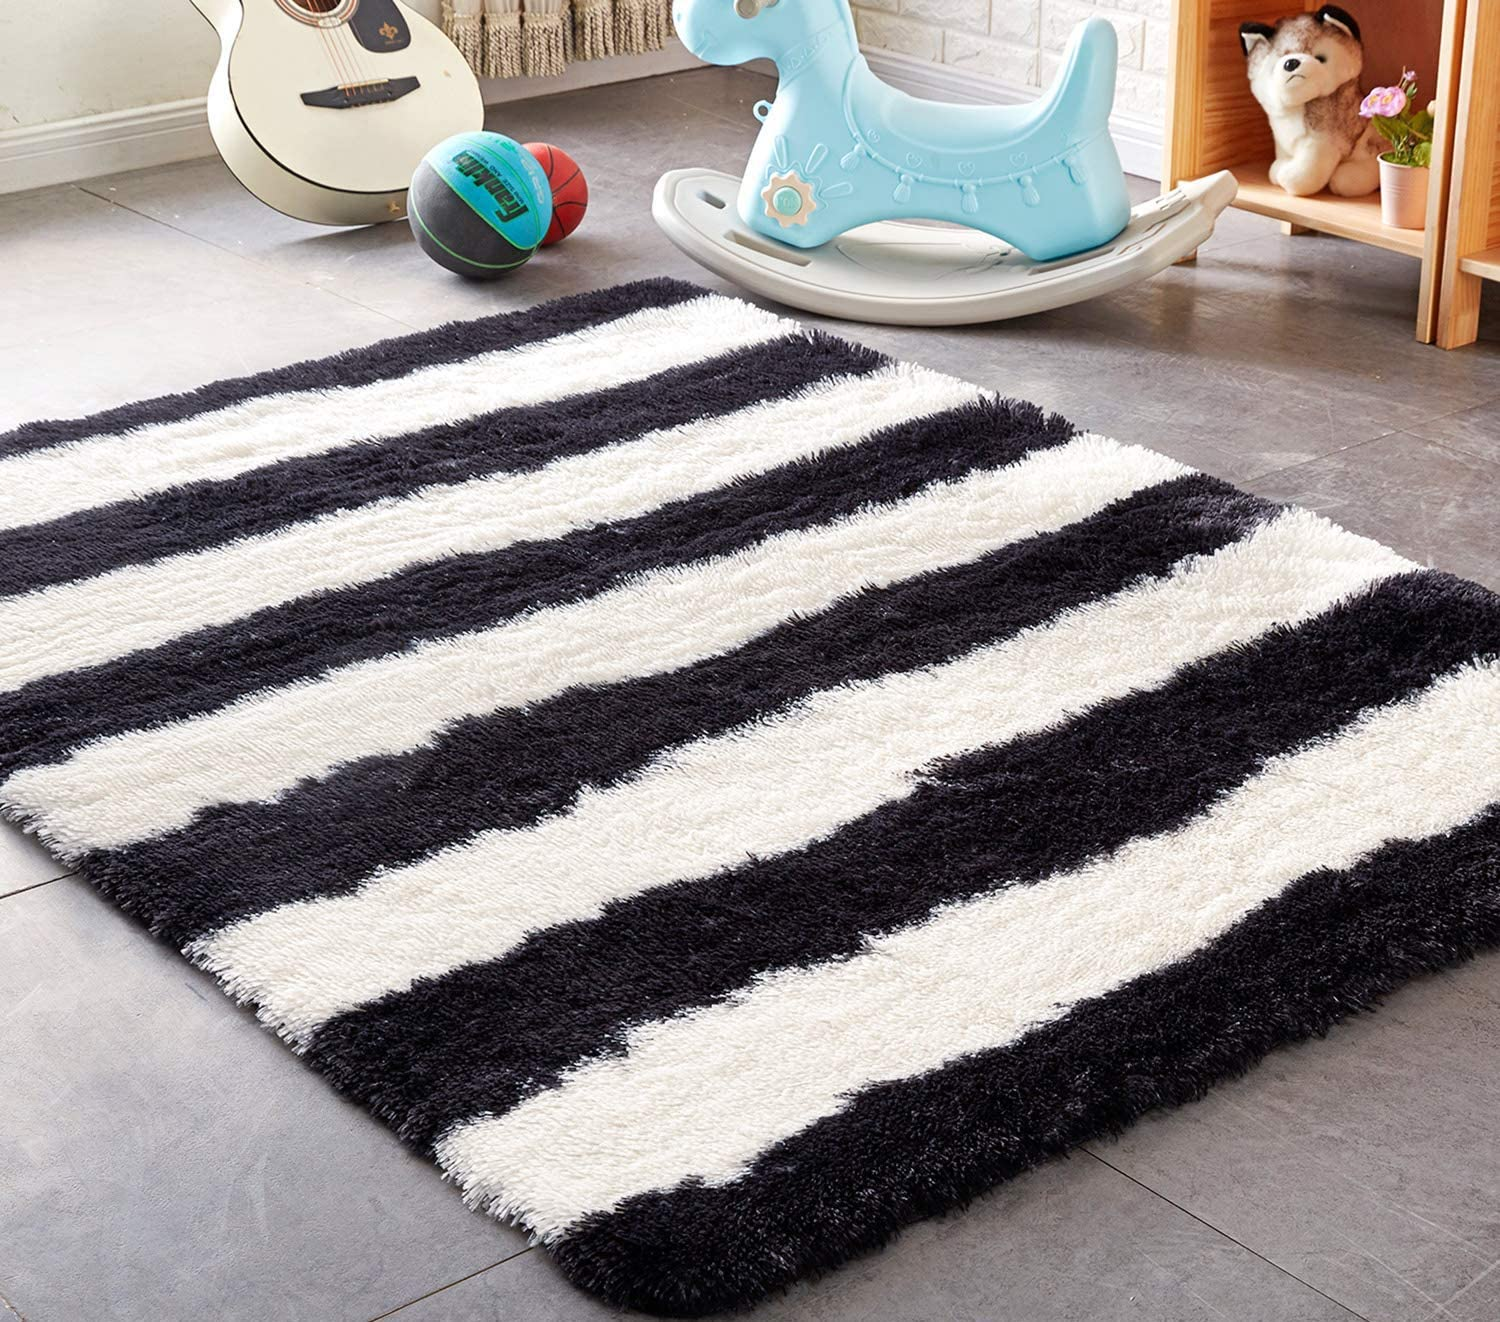 Amazon.com: PAGISOFE Black and White Striped Shaggy Area Rugs for